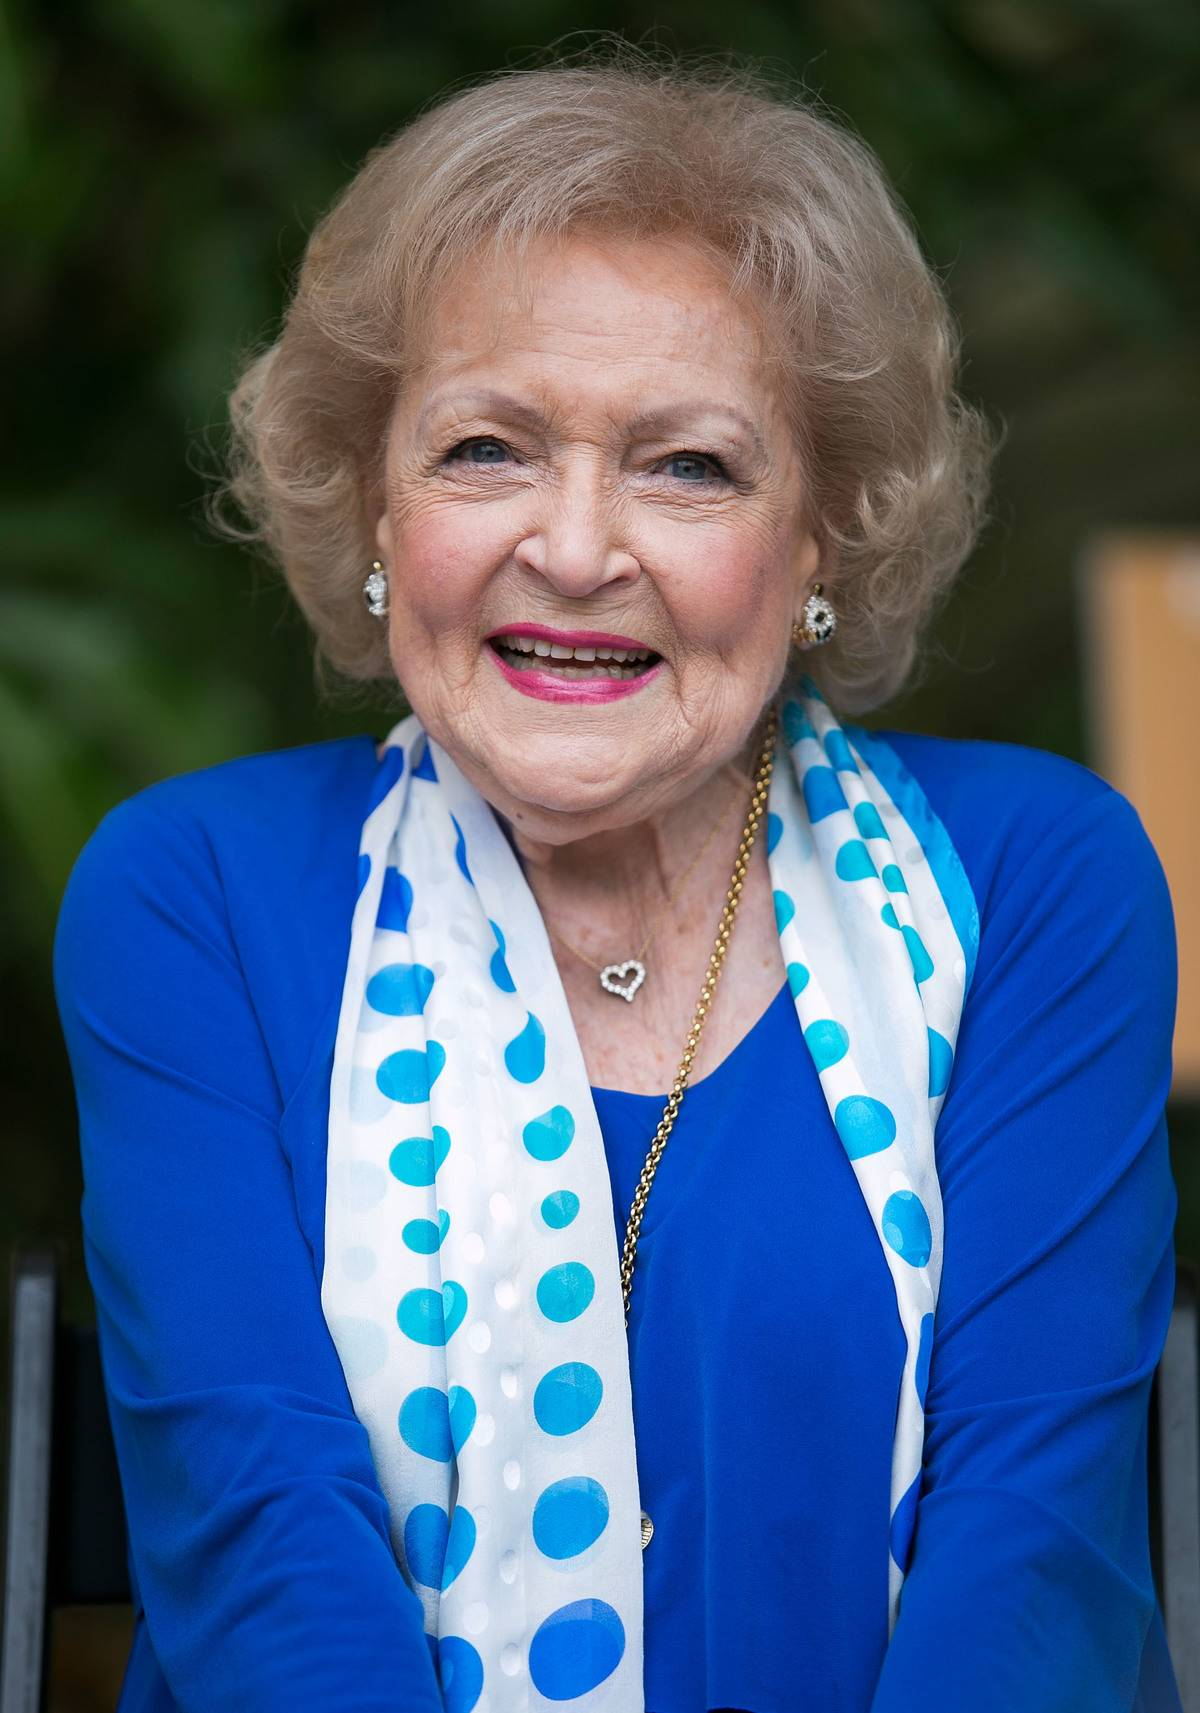 LOS ANGELES, CA - JUNE 11: Actress Betty White attends the media preview for Greater Los Angeles Zoo Association's Beastly Ball fundraiser at Los Angeles Zoo on June 11, 2015 in Los Angeles, California.